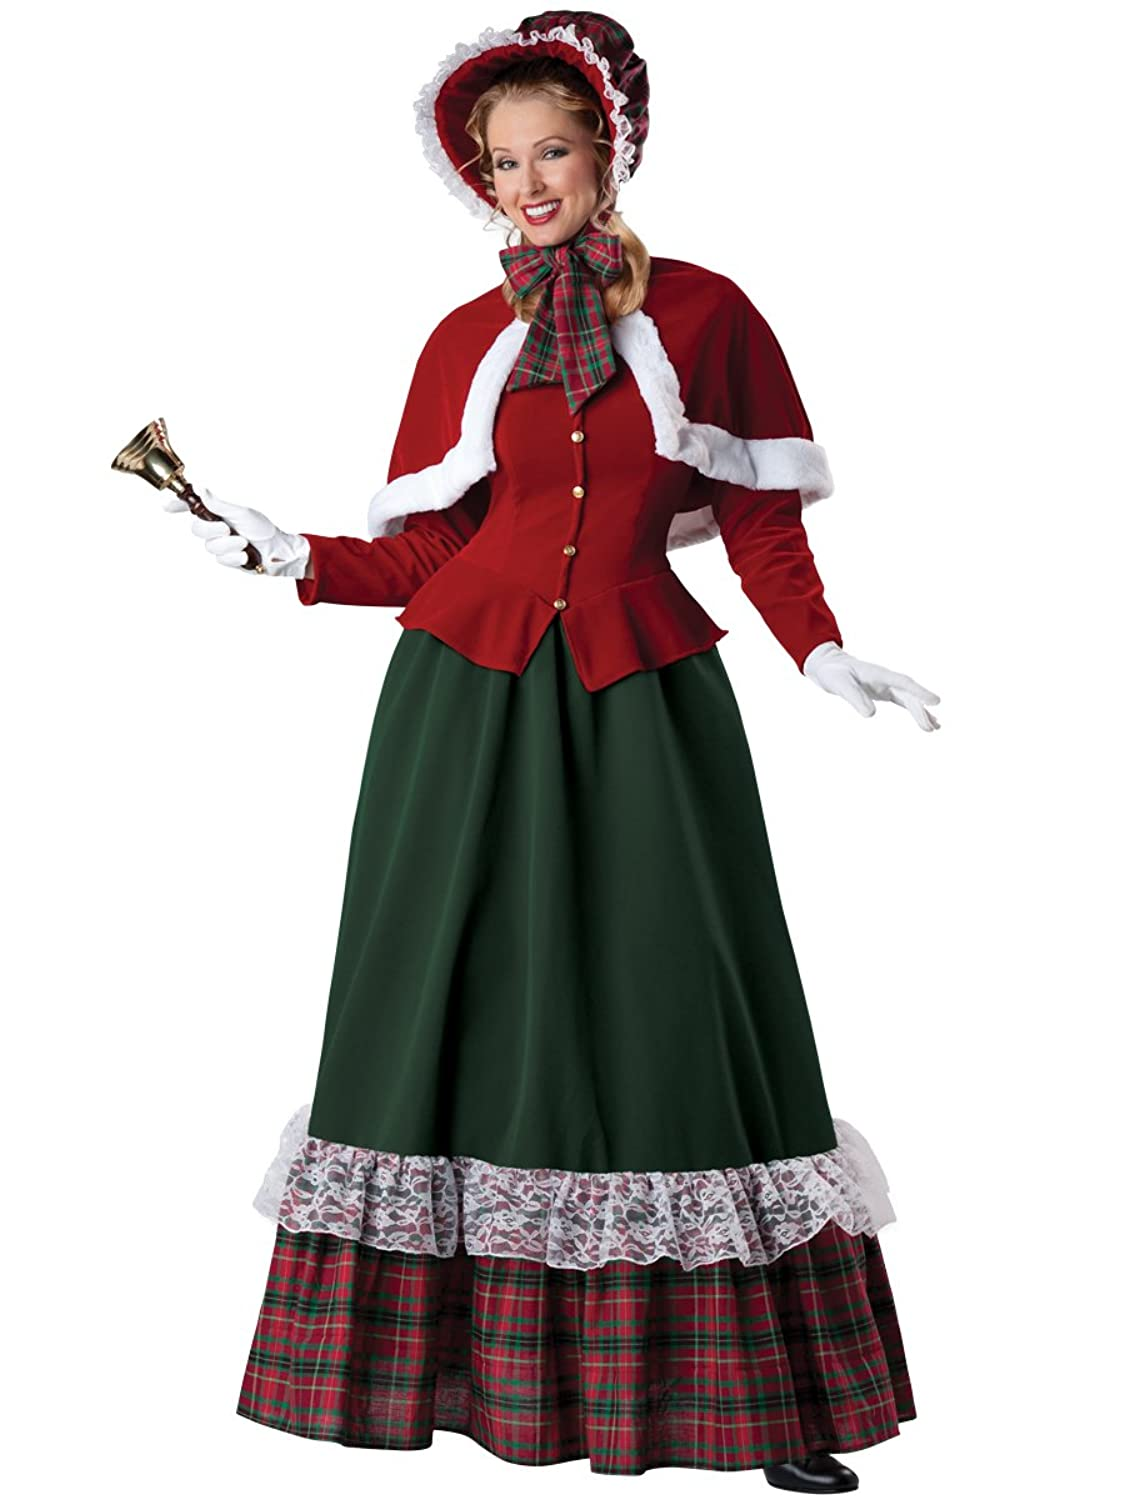 Victorian Dresses, Clothing: Patterns, Costumes, Custom Dresses Yuletide Lady Holiday Costume  AT vintagedancer.com